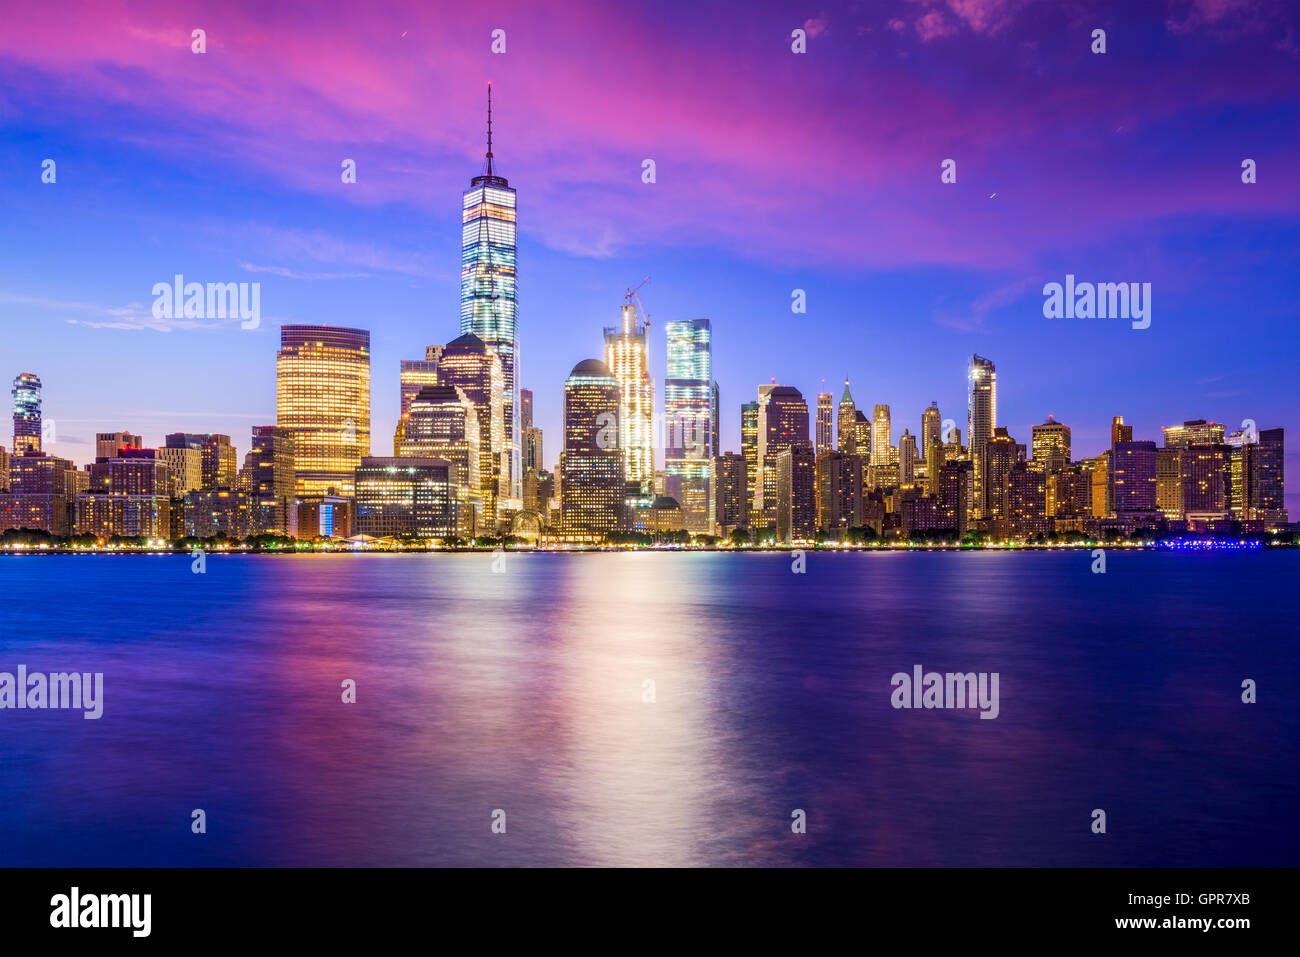 New York City Financial District skyline over the Hudson River. - Stock Image